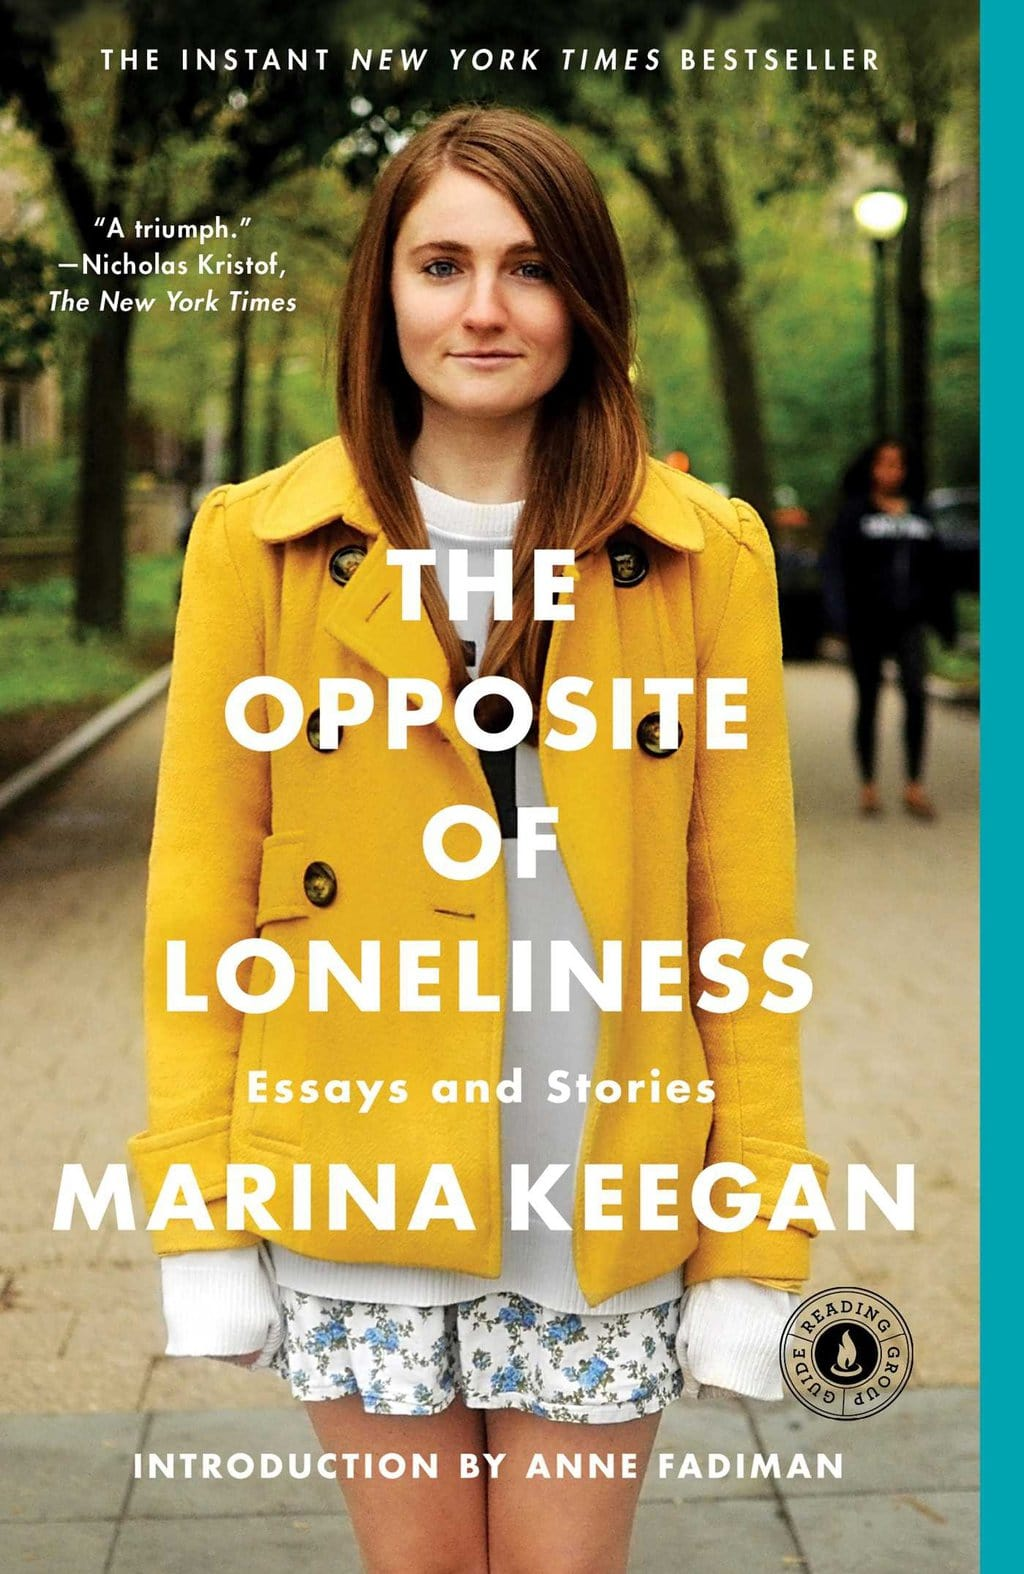 Books to read when you don't have time to read: The Opposite of Loneliness by Marina Keegan